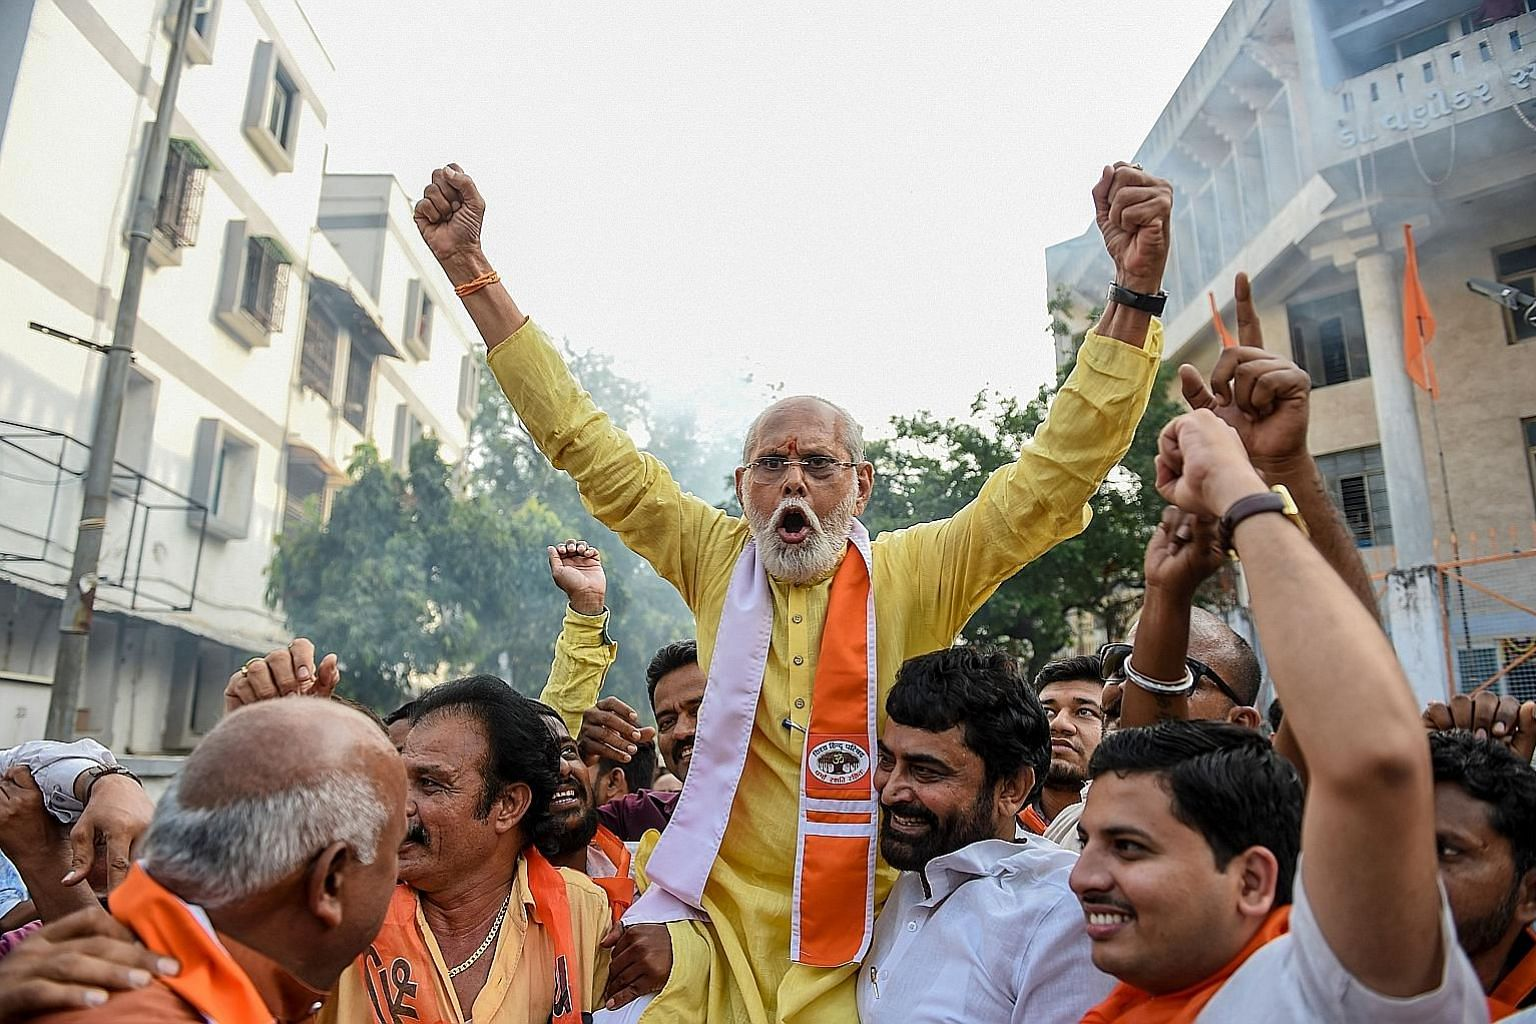 Supporters of the Vishwa Hindu Parishad militant organisation in Ahmedabad last Saturday, celebrating India's Supreme Court's decision to award control of a disputed religious site in Ayodhya to the Hindus.